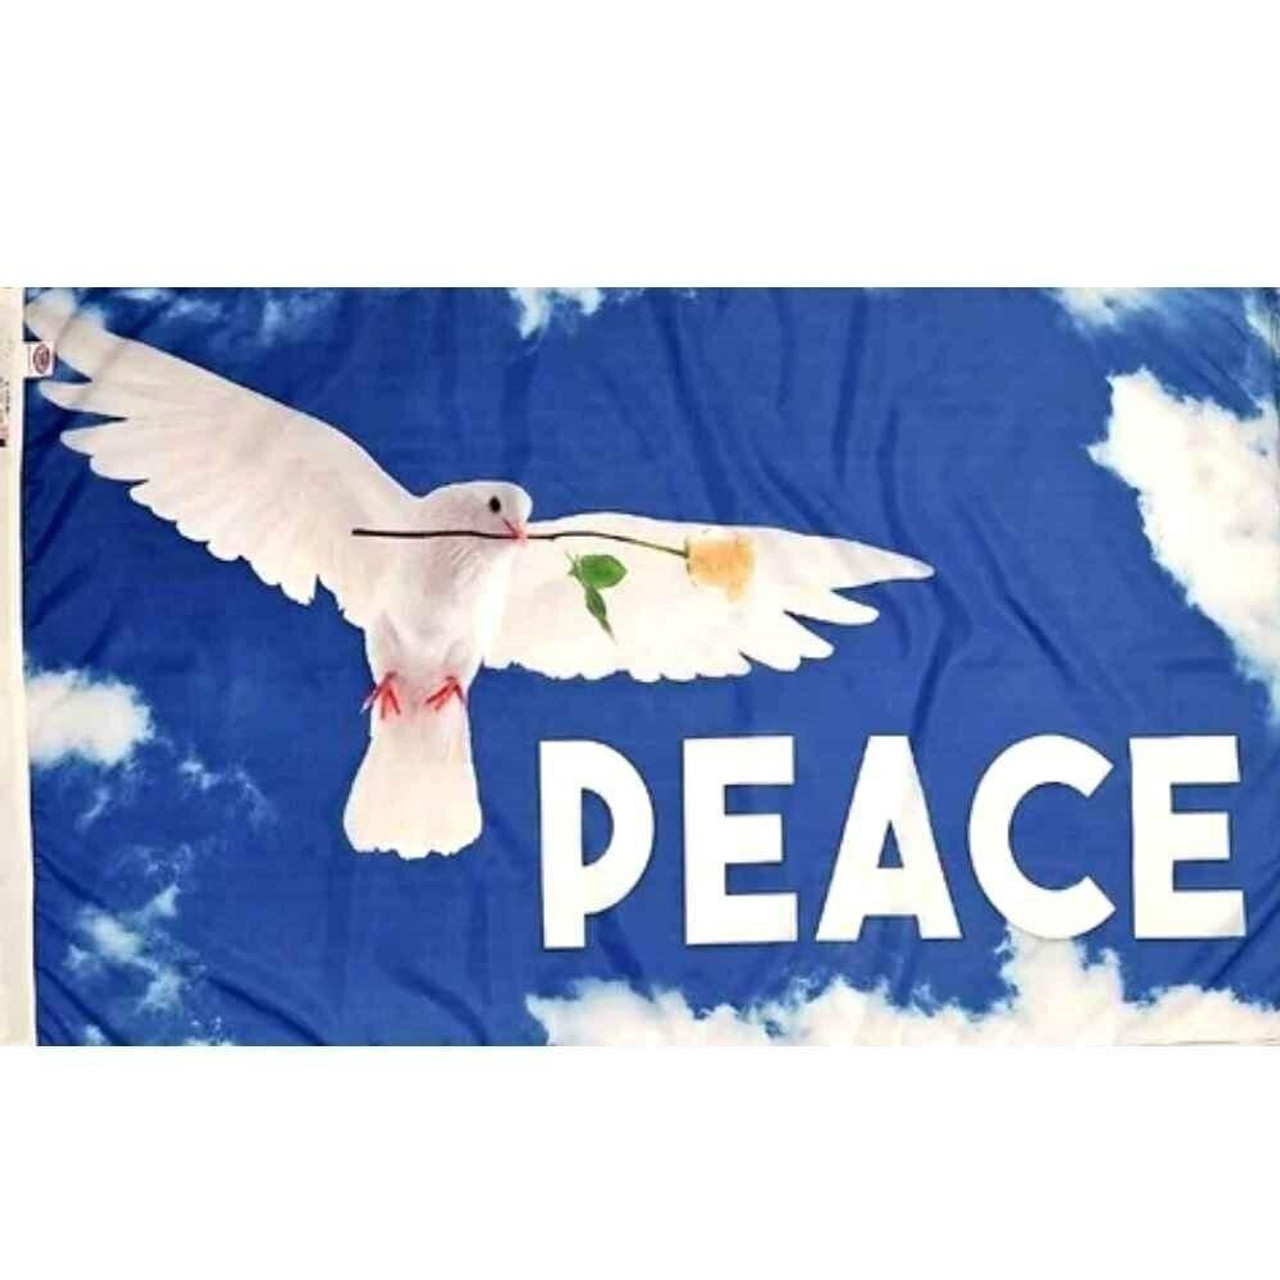 The Peace Dove flag has a sky blue background with white clouds and a white peace dove and lettering in the forefront.